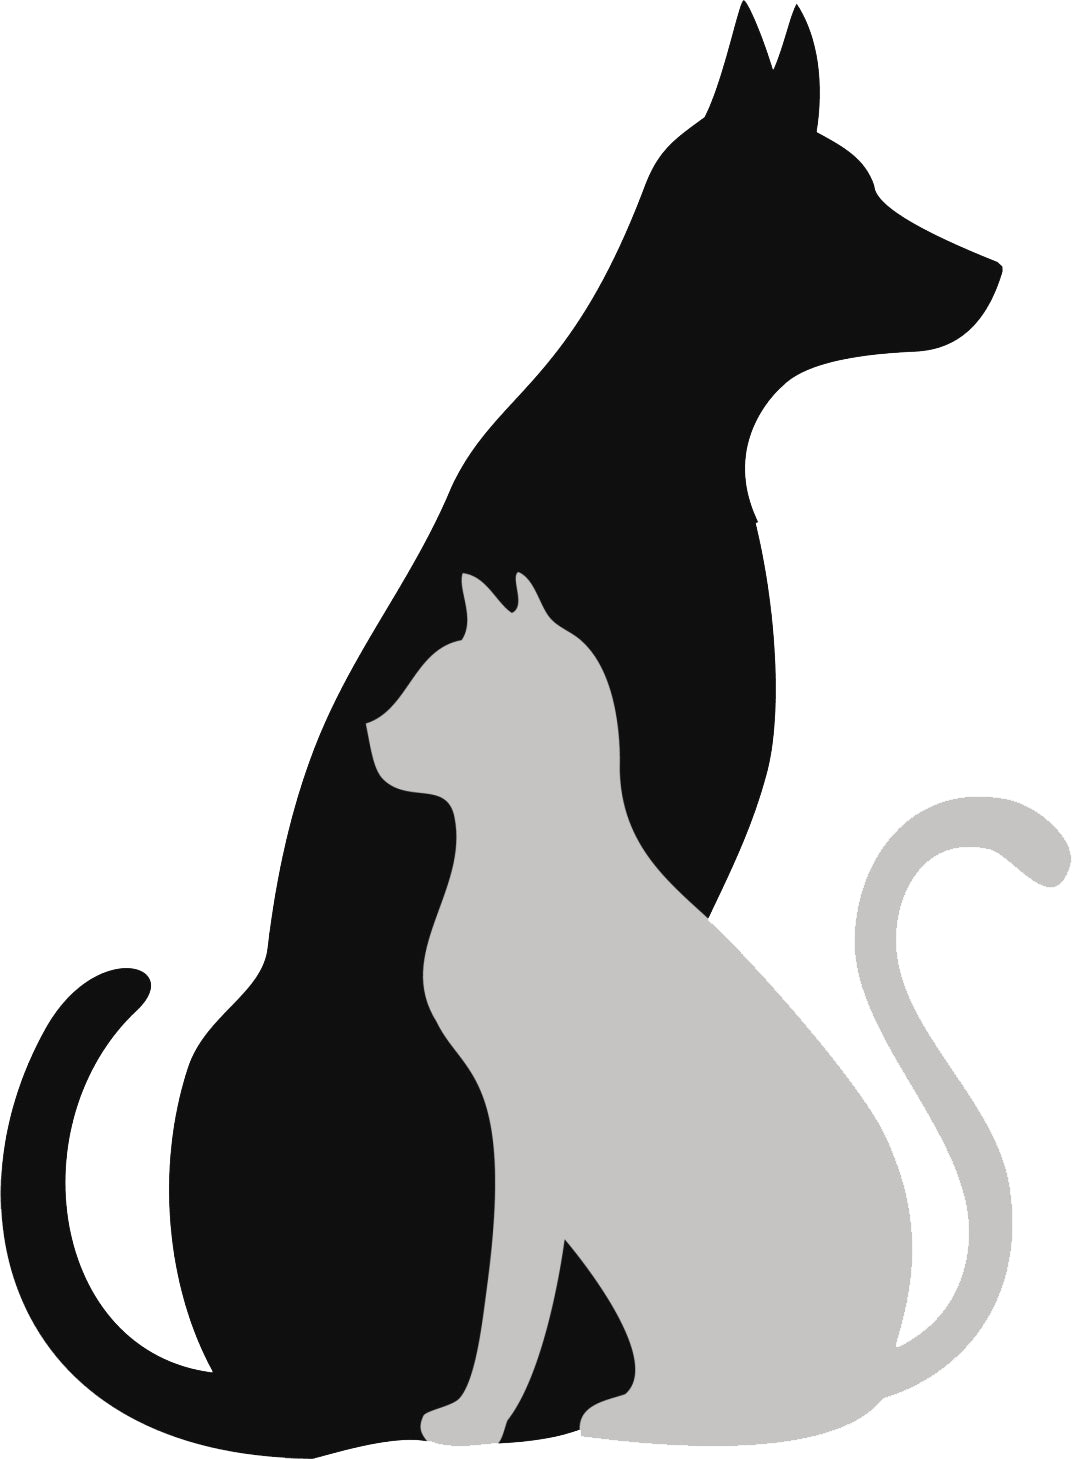 Simple Dog and Cat Silhouette Cartoon Icon for Pet Lovers #1 Vinyl Decal Sticker